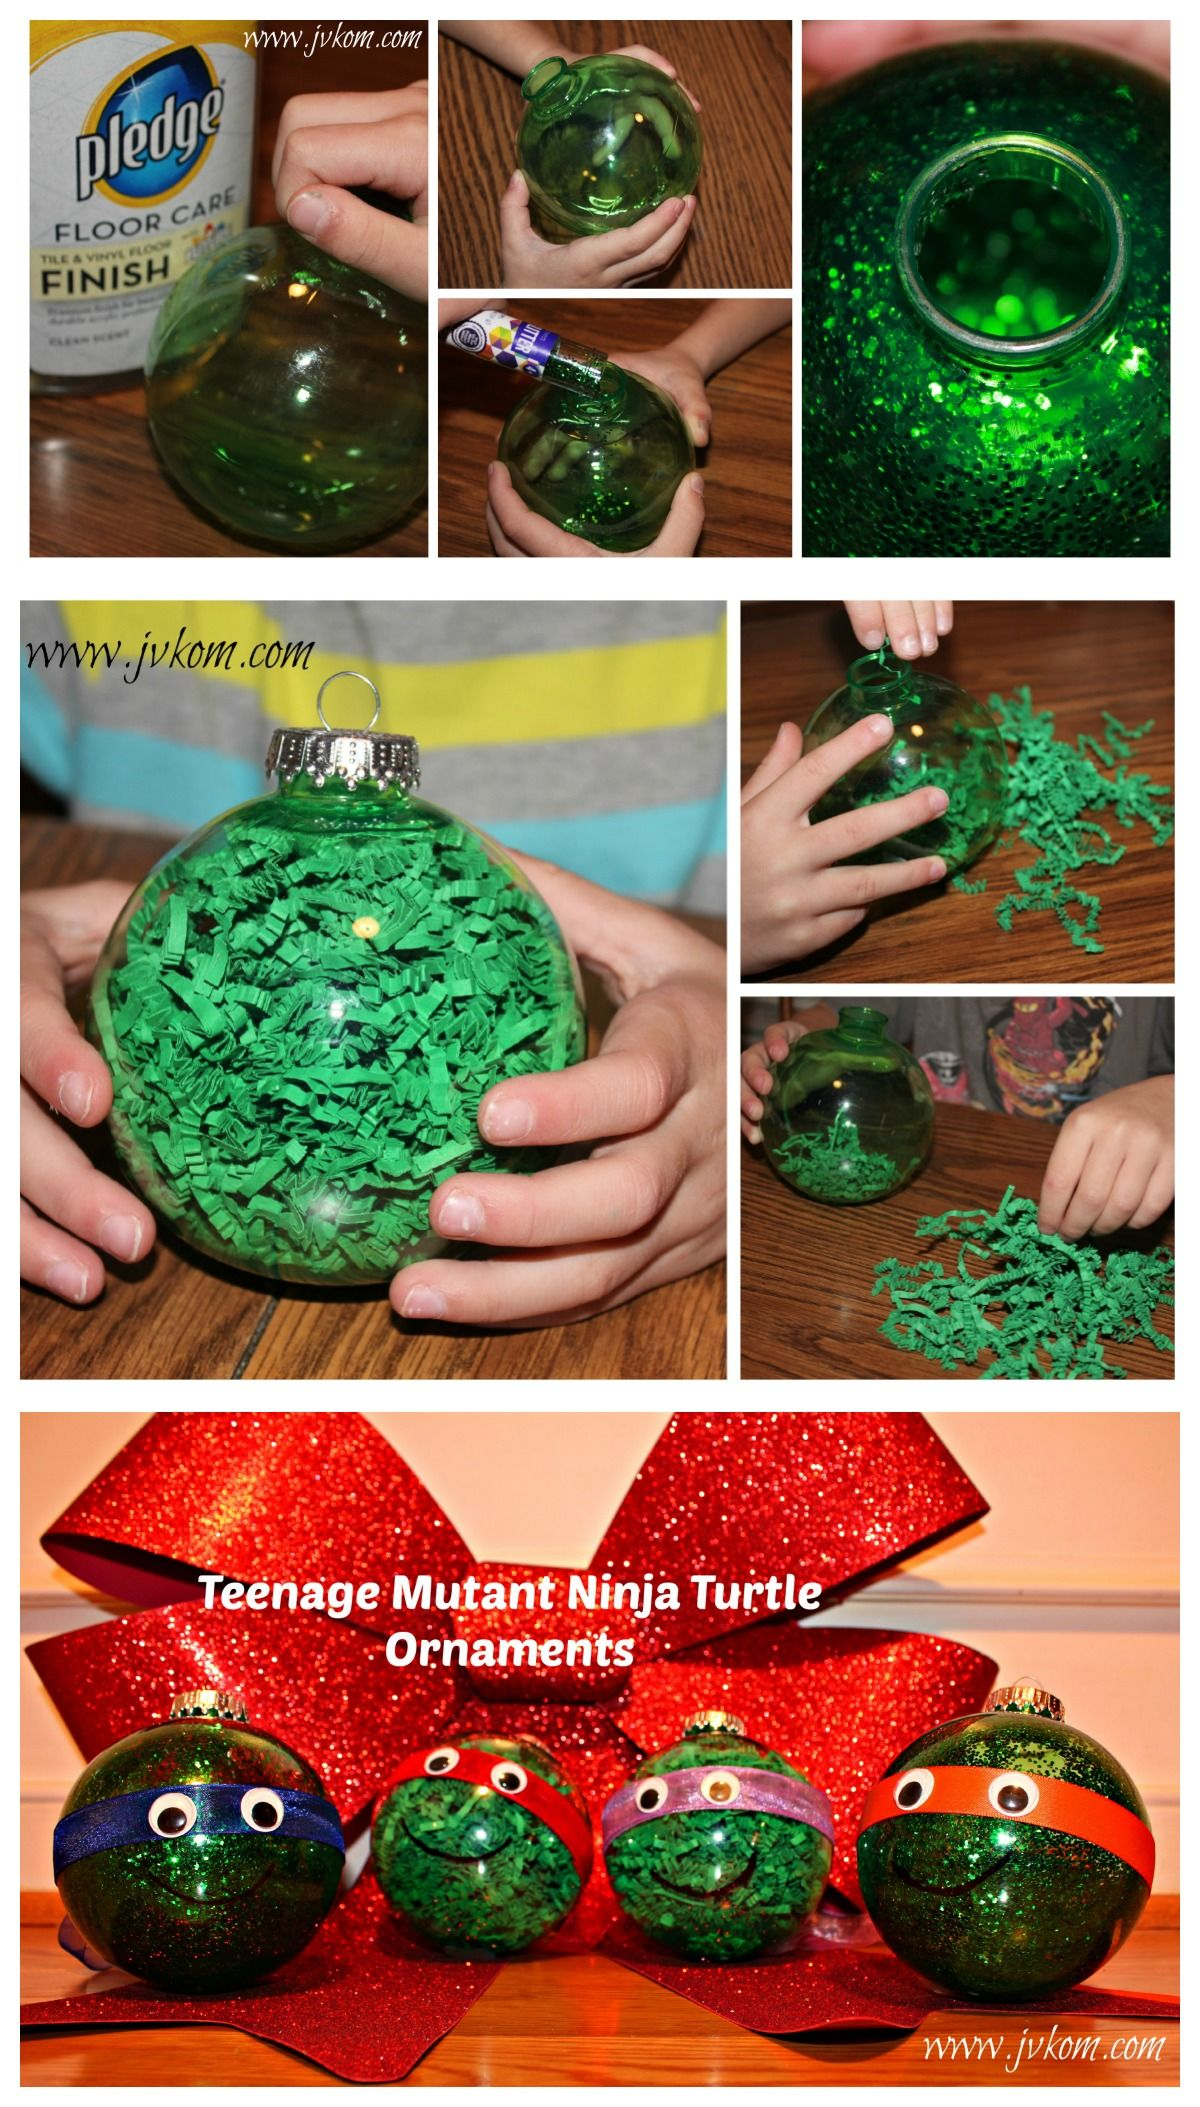 Diy ninja turtle ornaments ninja turtles christmas ornament and diy ninja turtle christmas ornaments click through for complete sciox Image collections